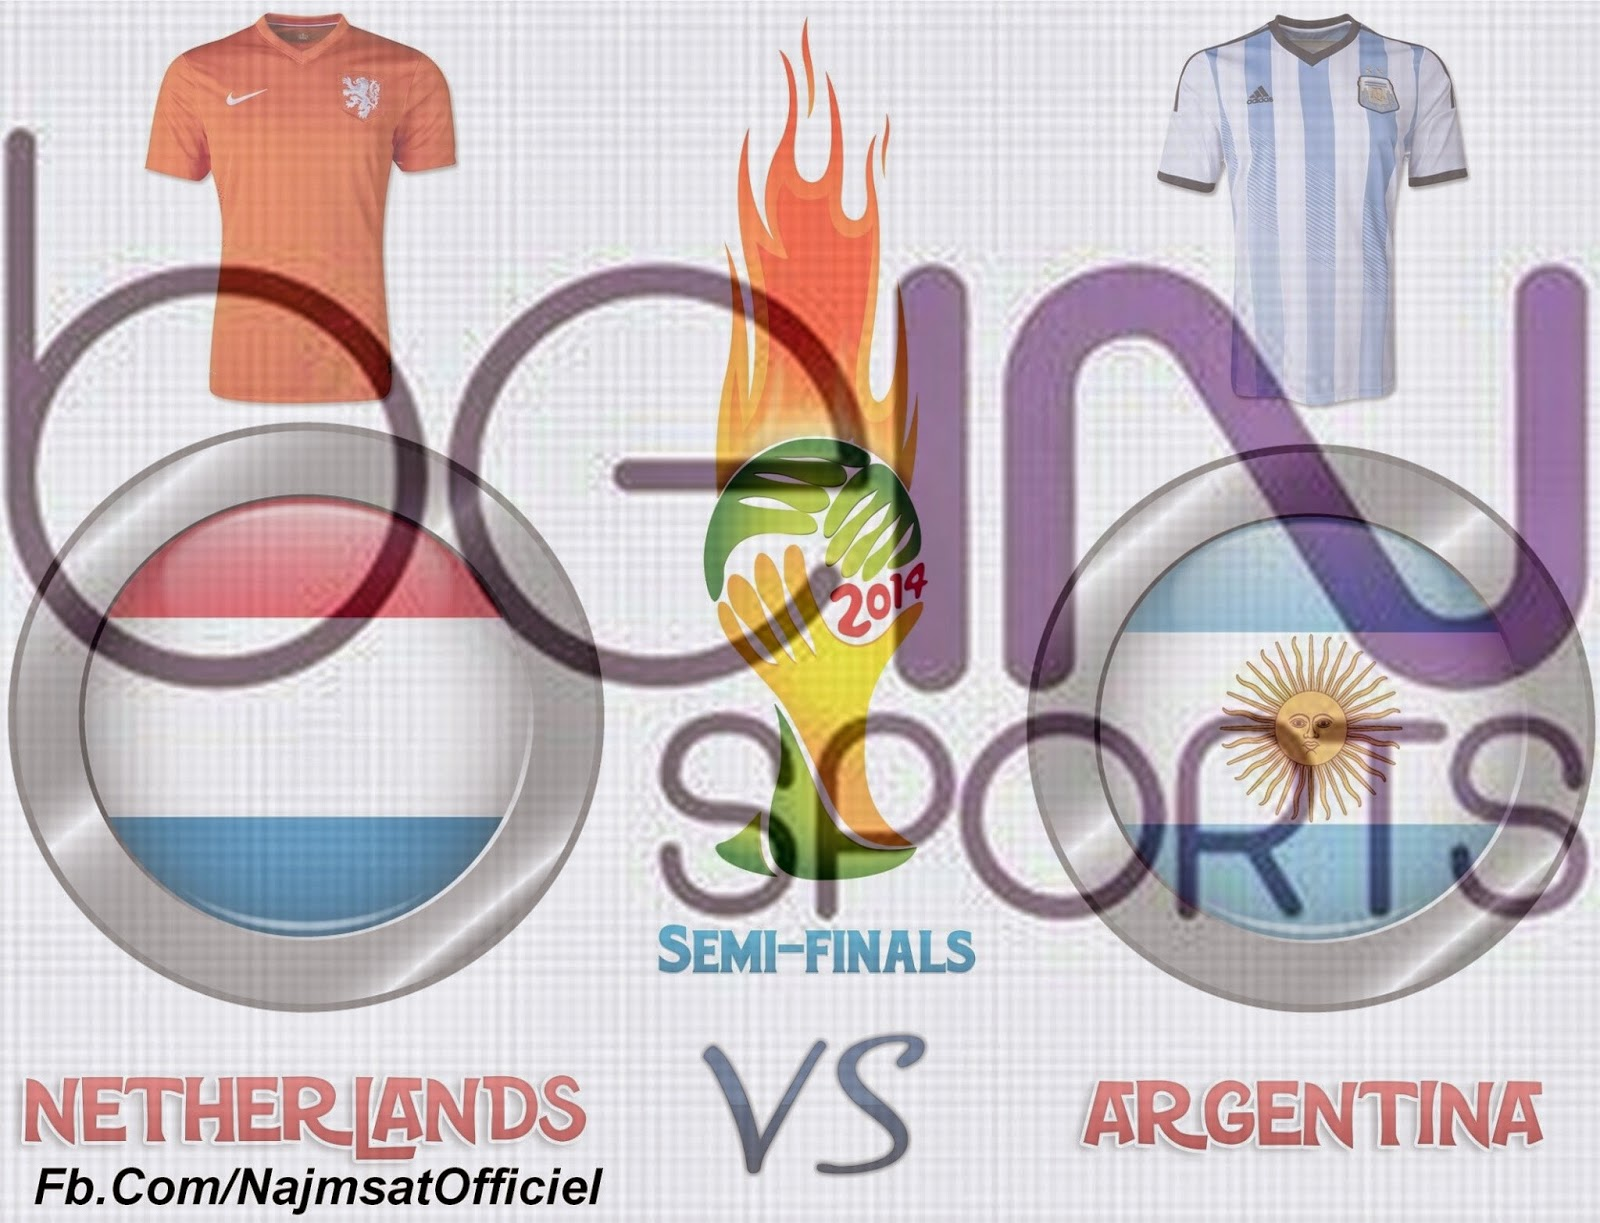 Netherlands Vs Argentina On beIN S 25.5°E & beIN S Feed 3.1°E & beIN ...